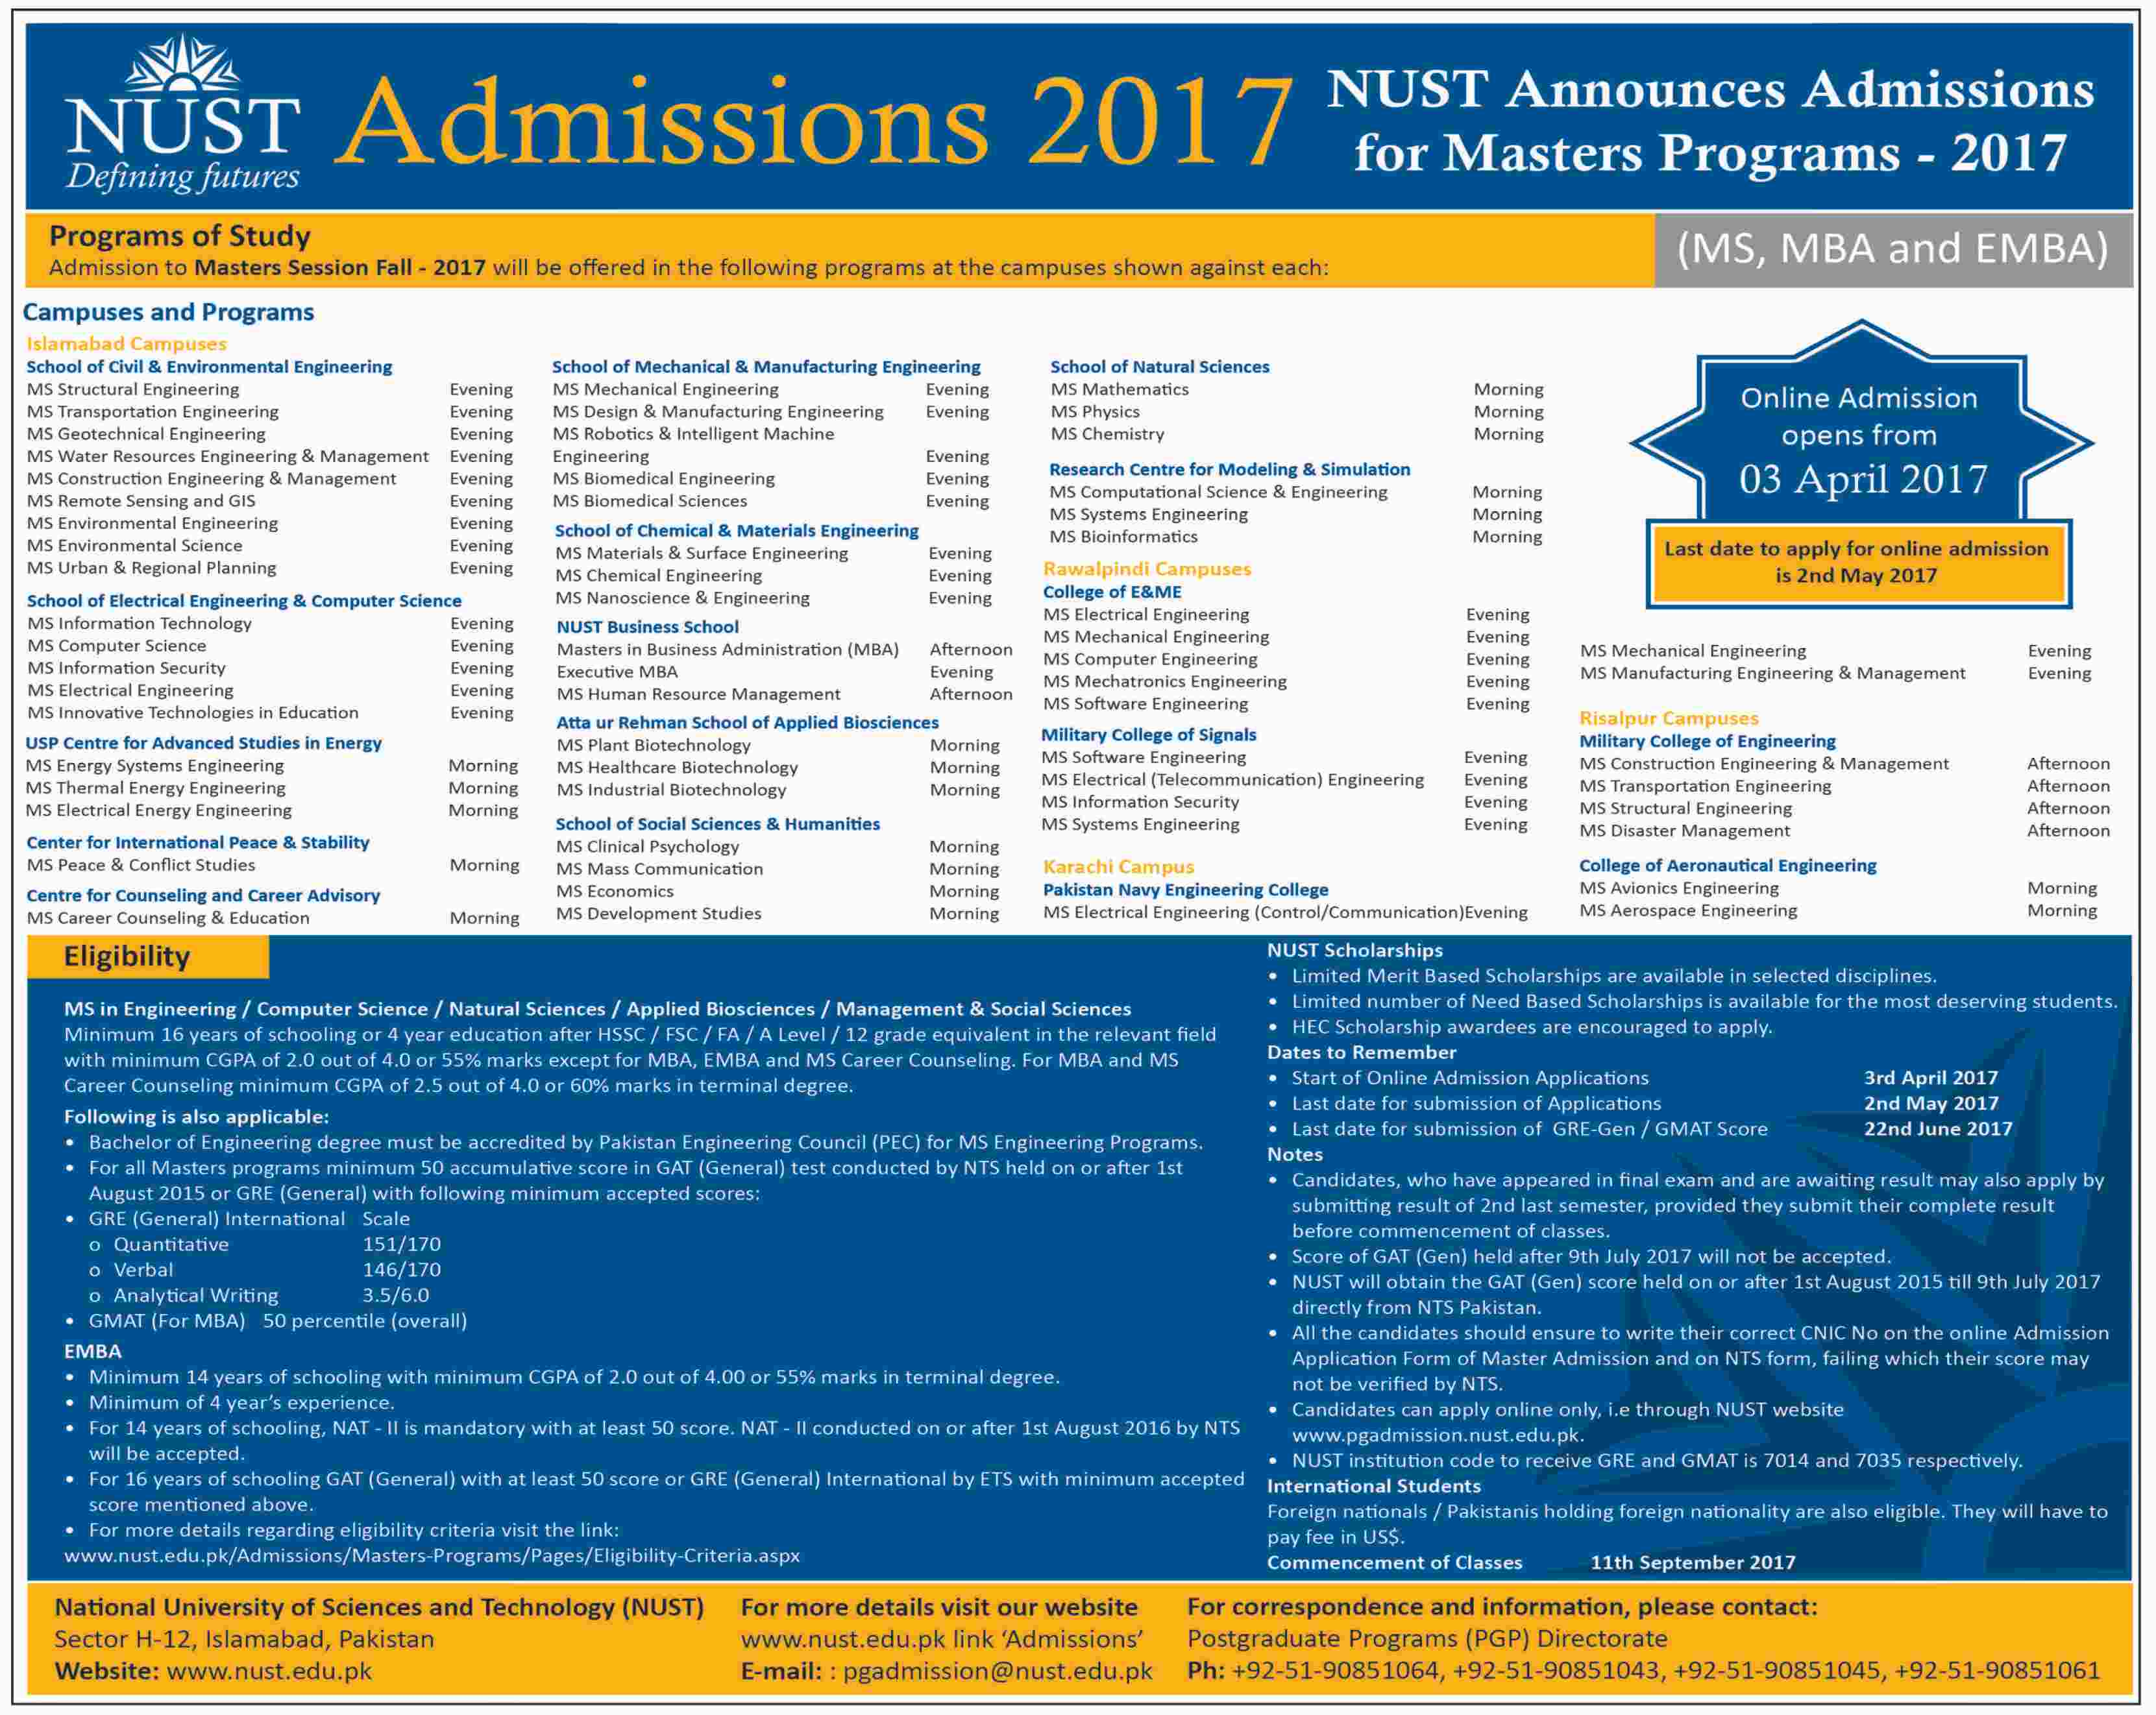 NUST University MS, MBA, EMBA Admissions 2017 Application Form Date